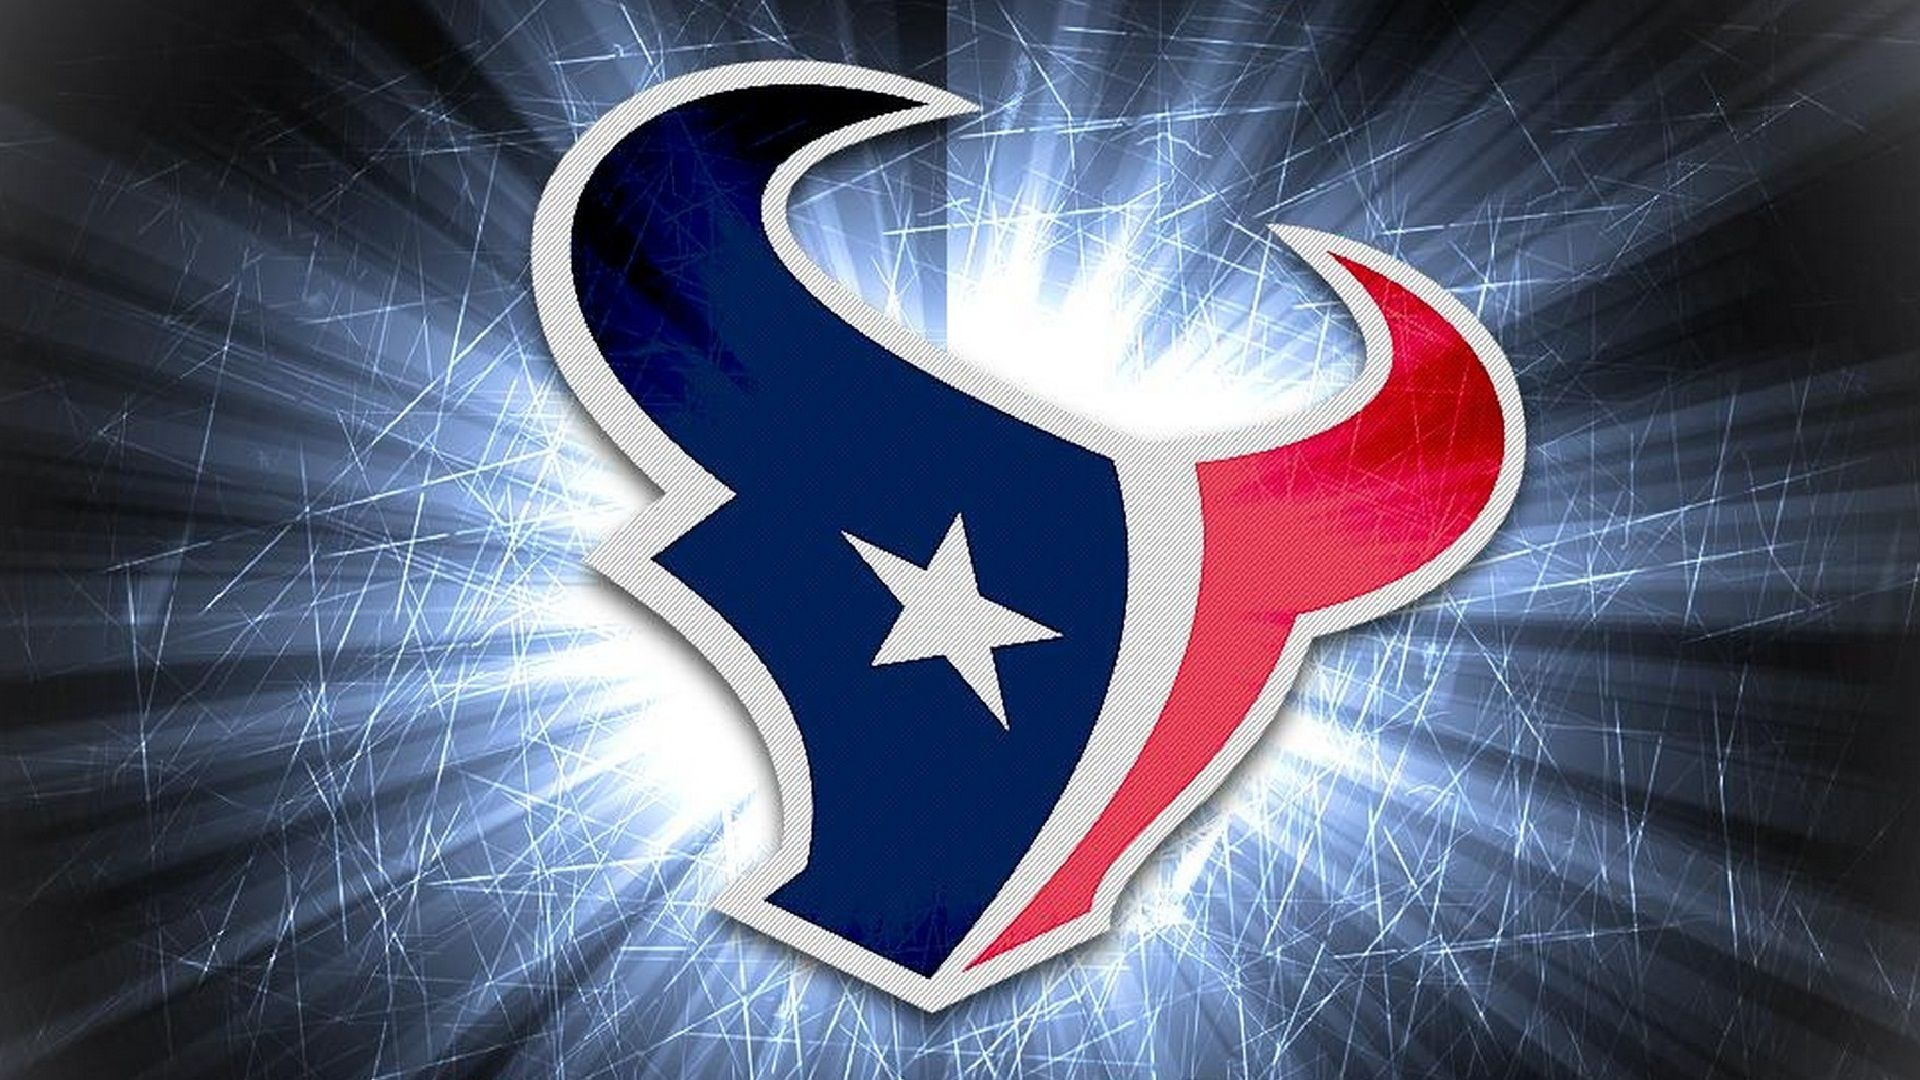 Houston Texans HD Wallpapers Wallpapers Houston texans 1920x1080